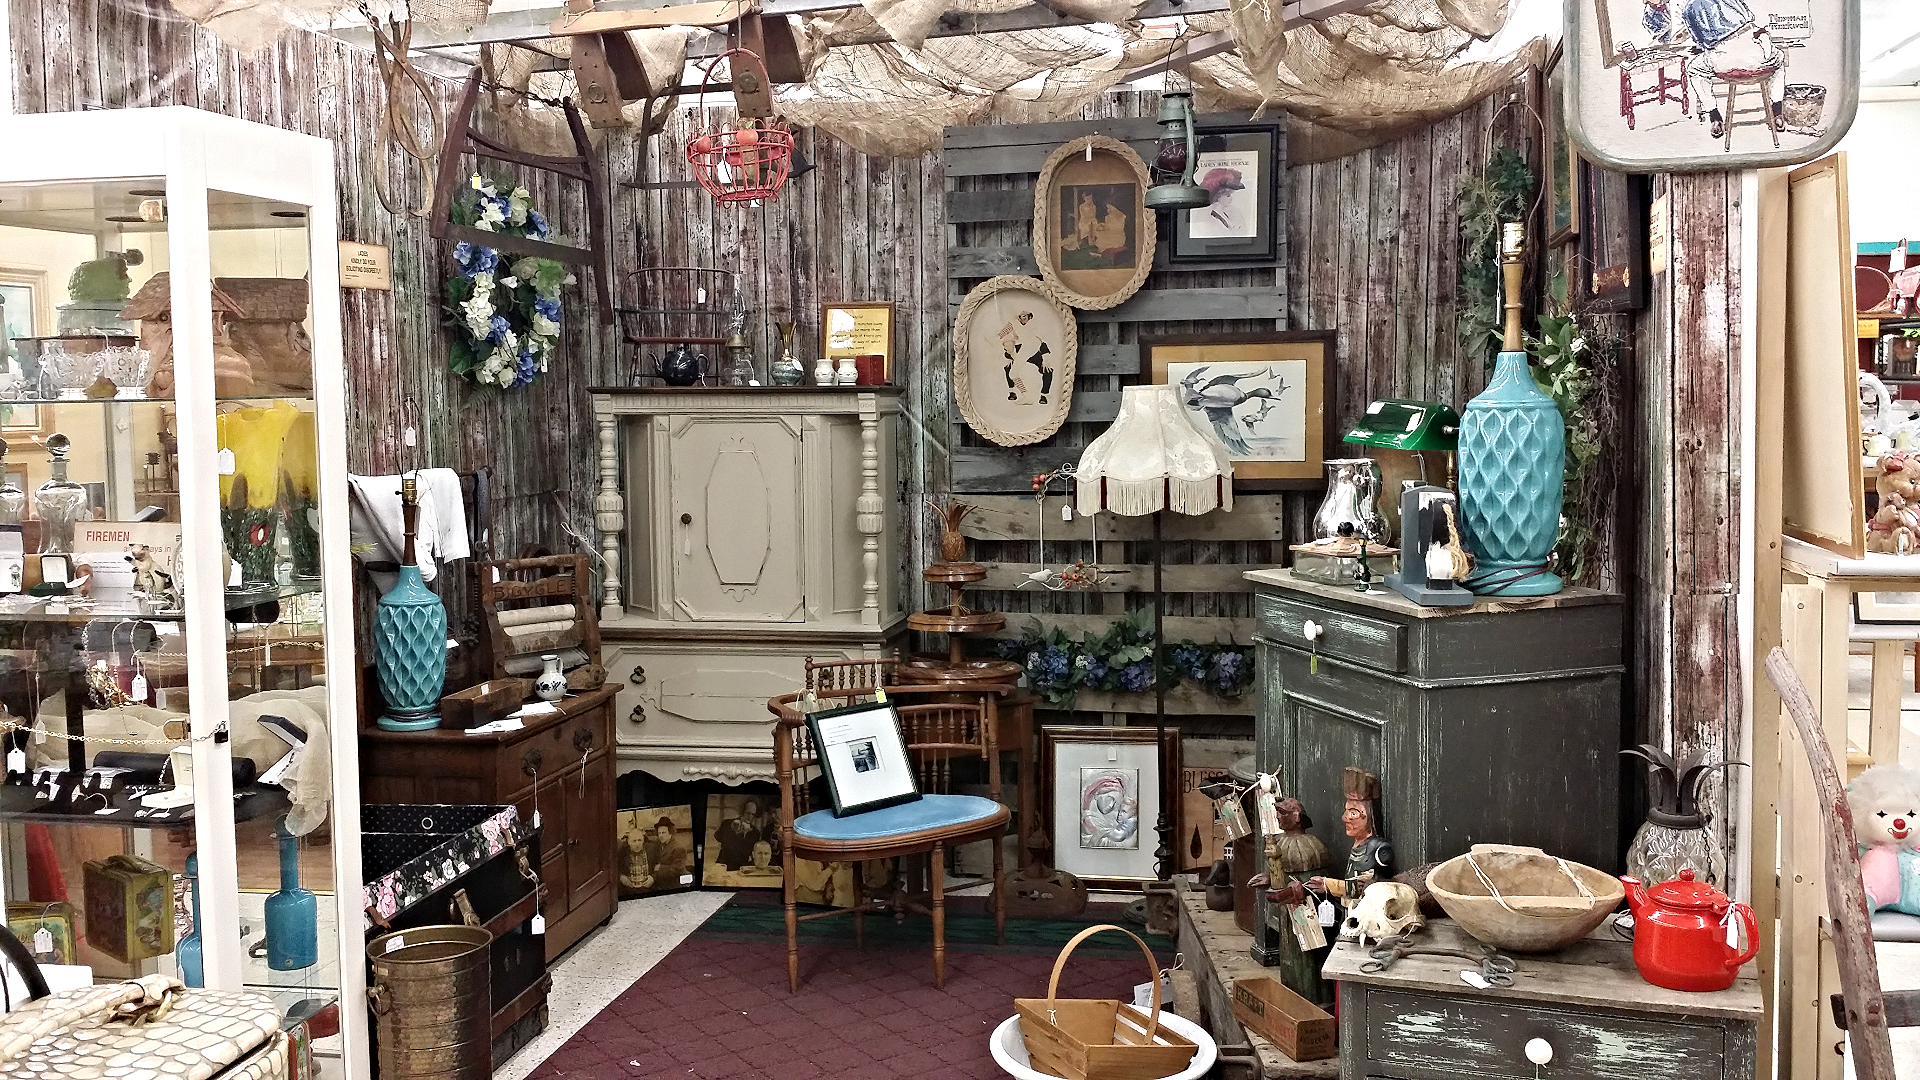 Wickliffe Flower Barn & Antiques